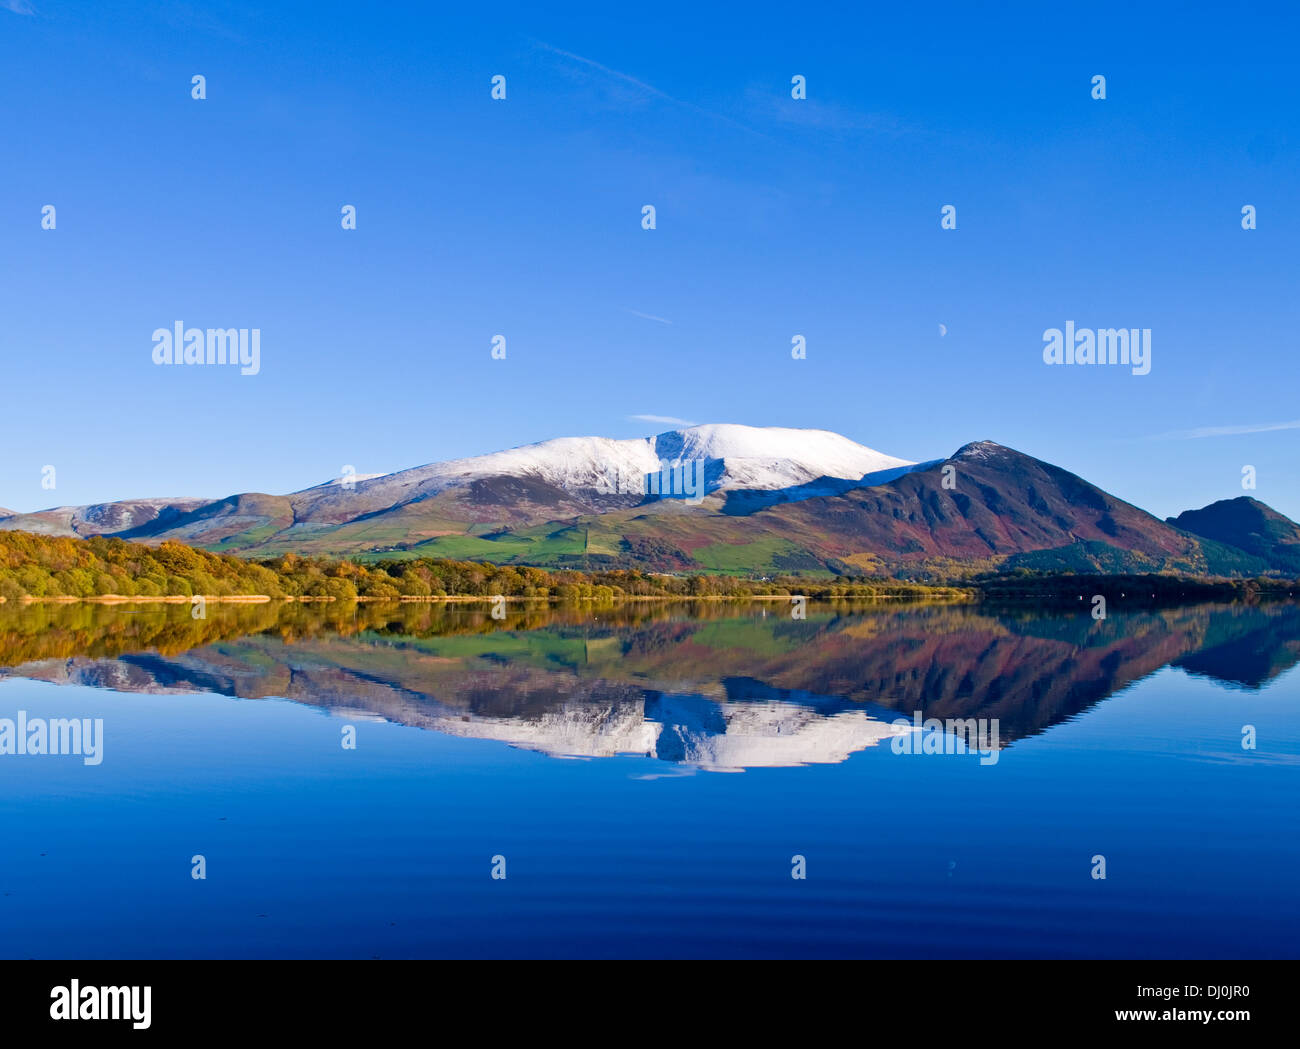 Snow-capped Skiddaw, Ullock Pike and Dodd reflected in the mirror-like Lake Bassenthwaite, Autumn, Lake District, Cumbria, UK - Stock Image